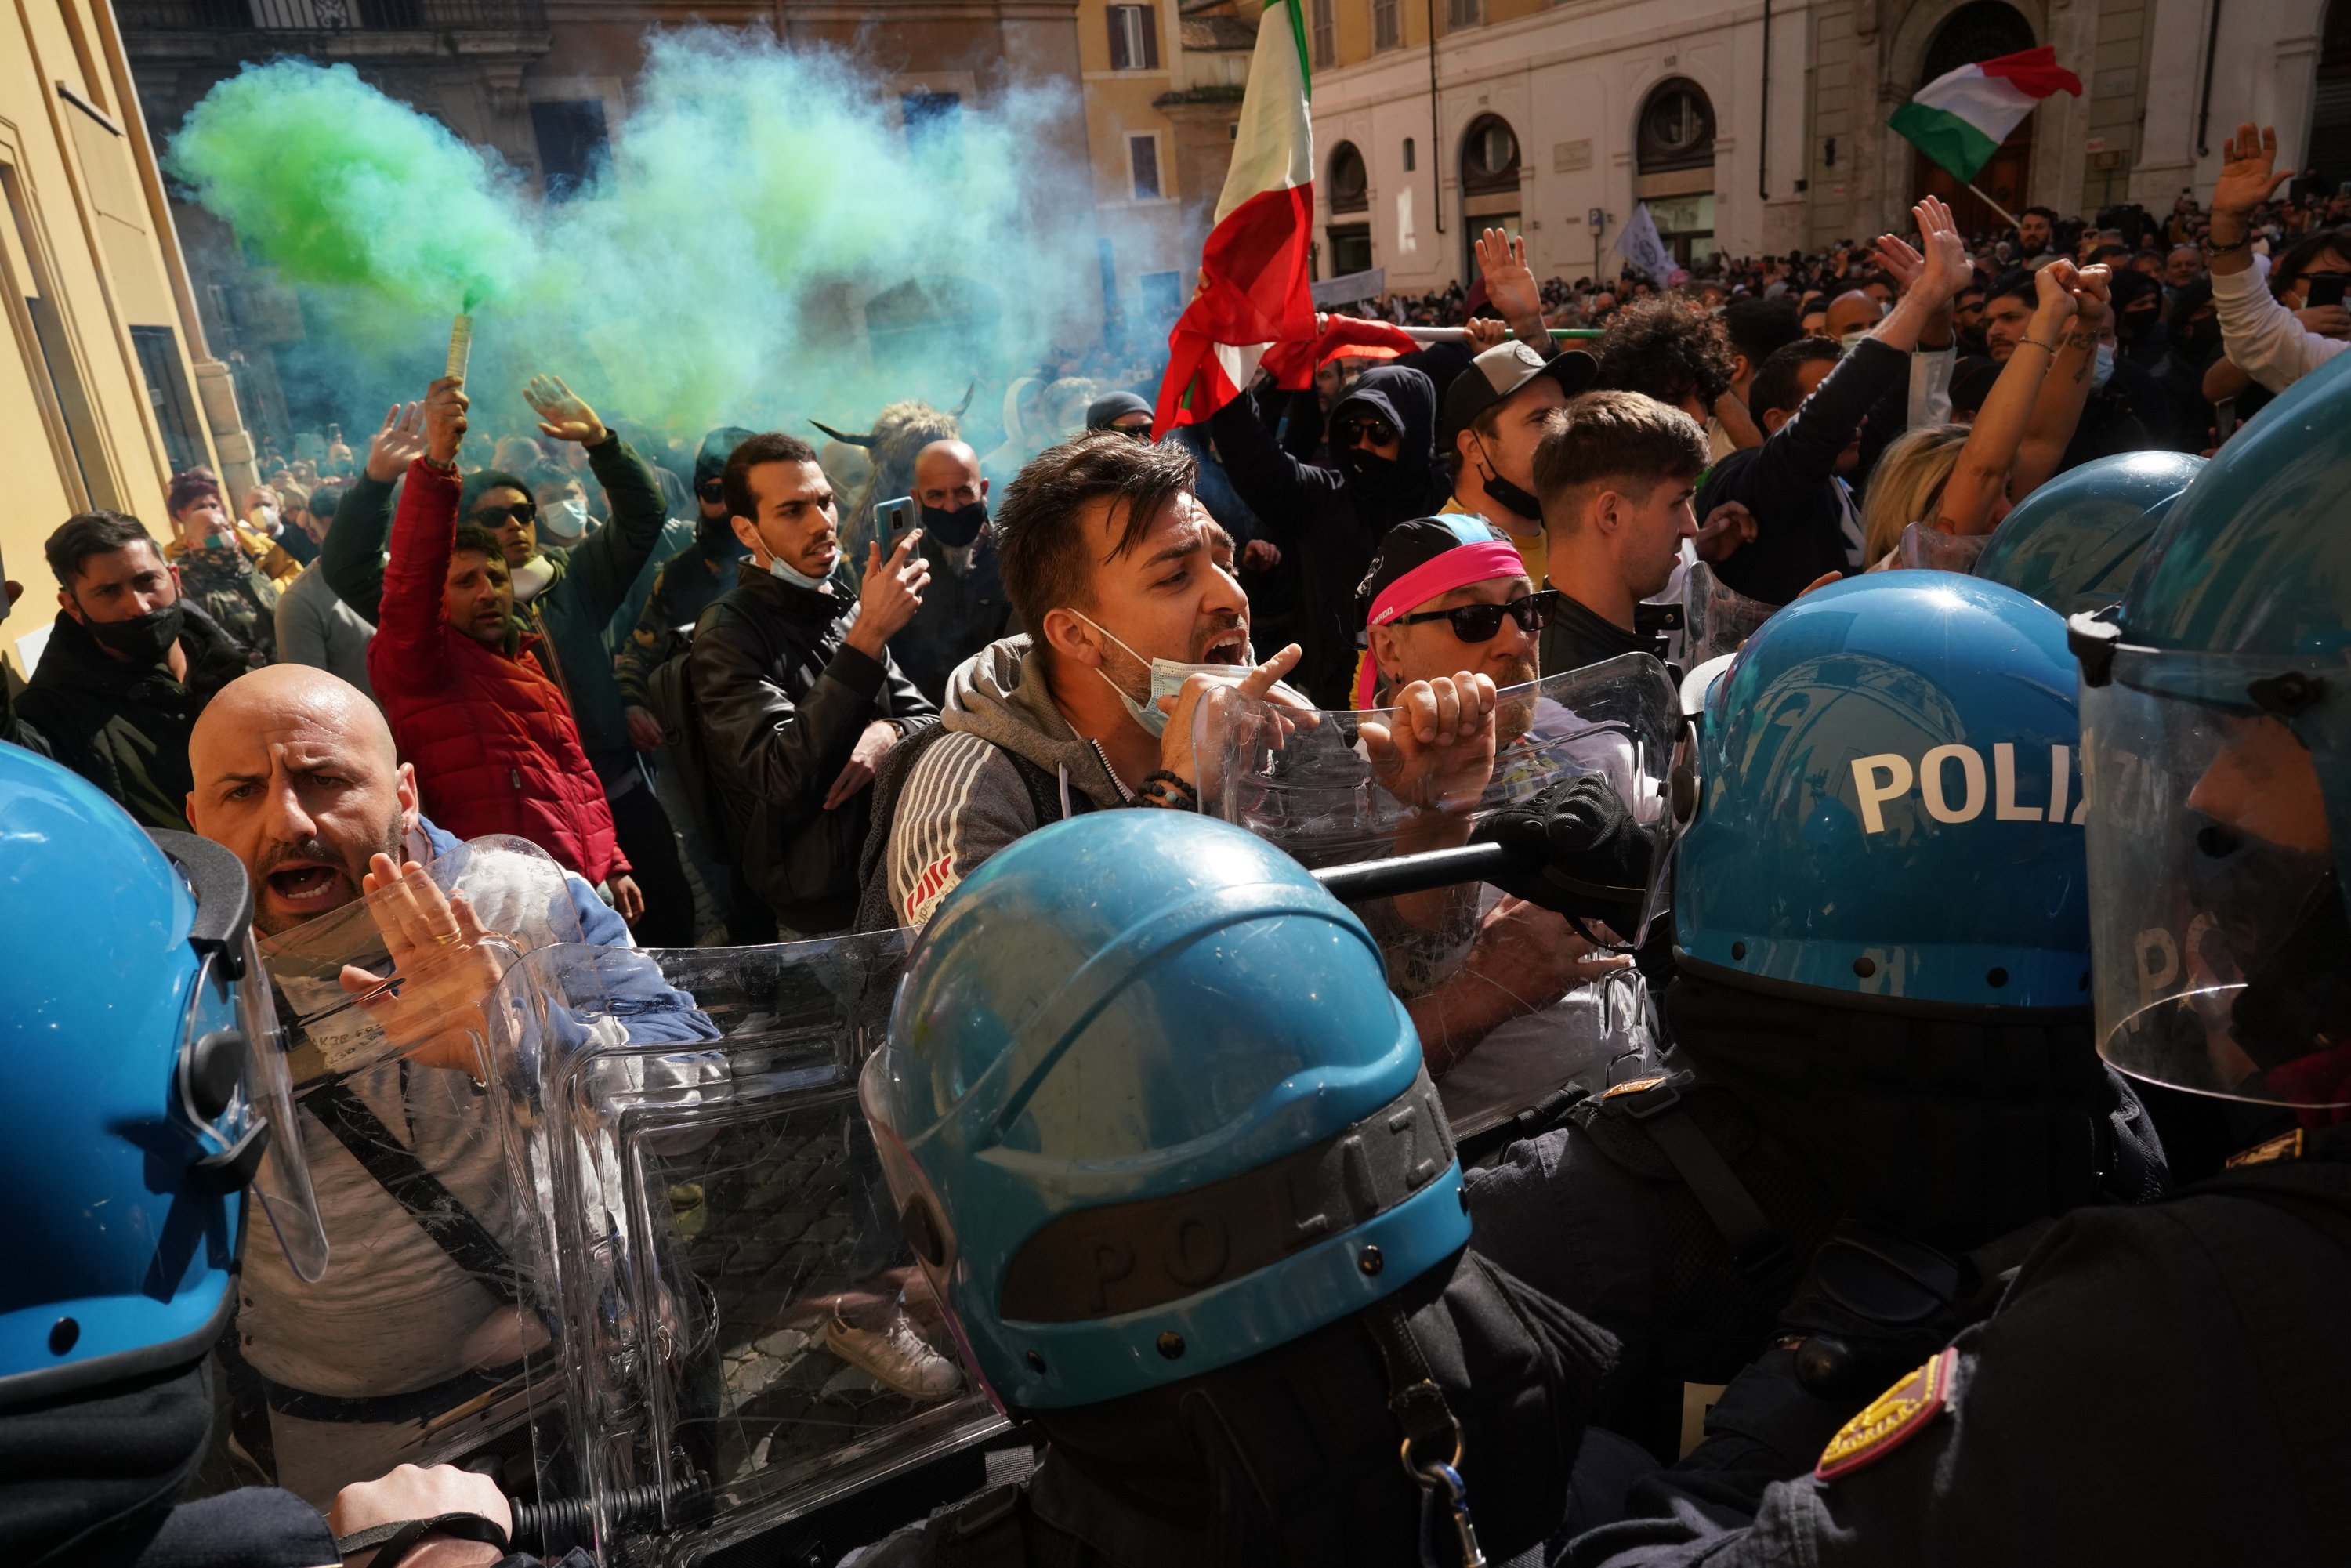 Restaurant owners clash with police in Rome lockdown protest